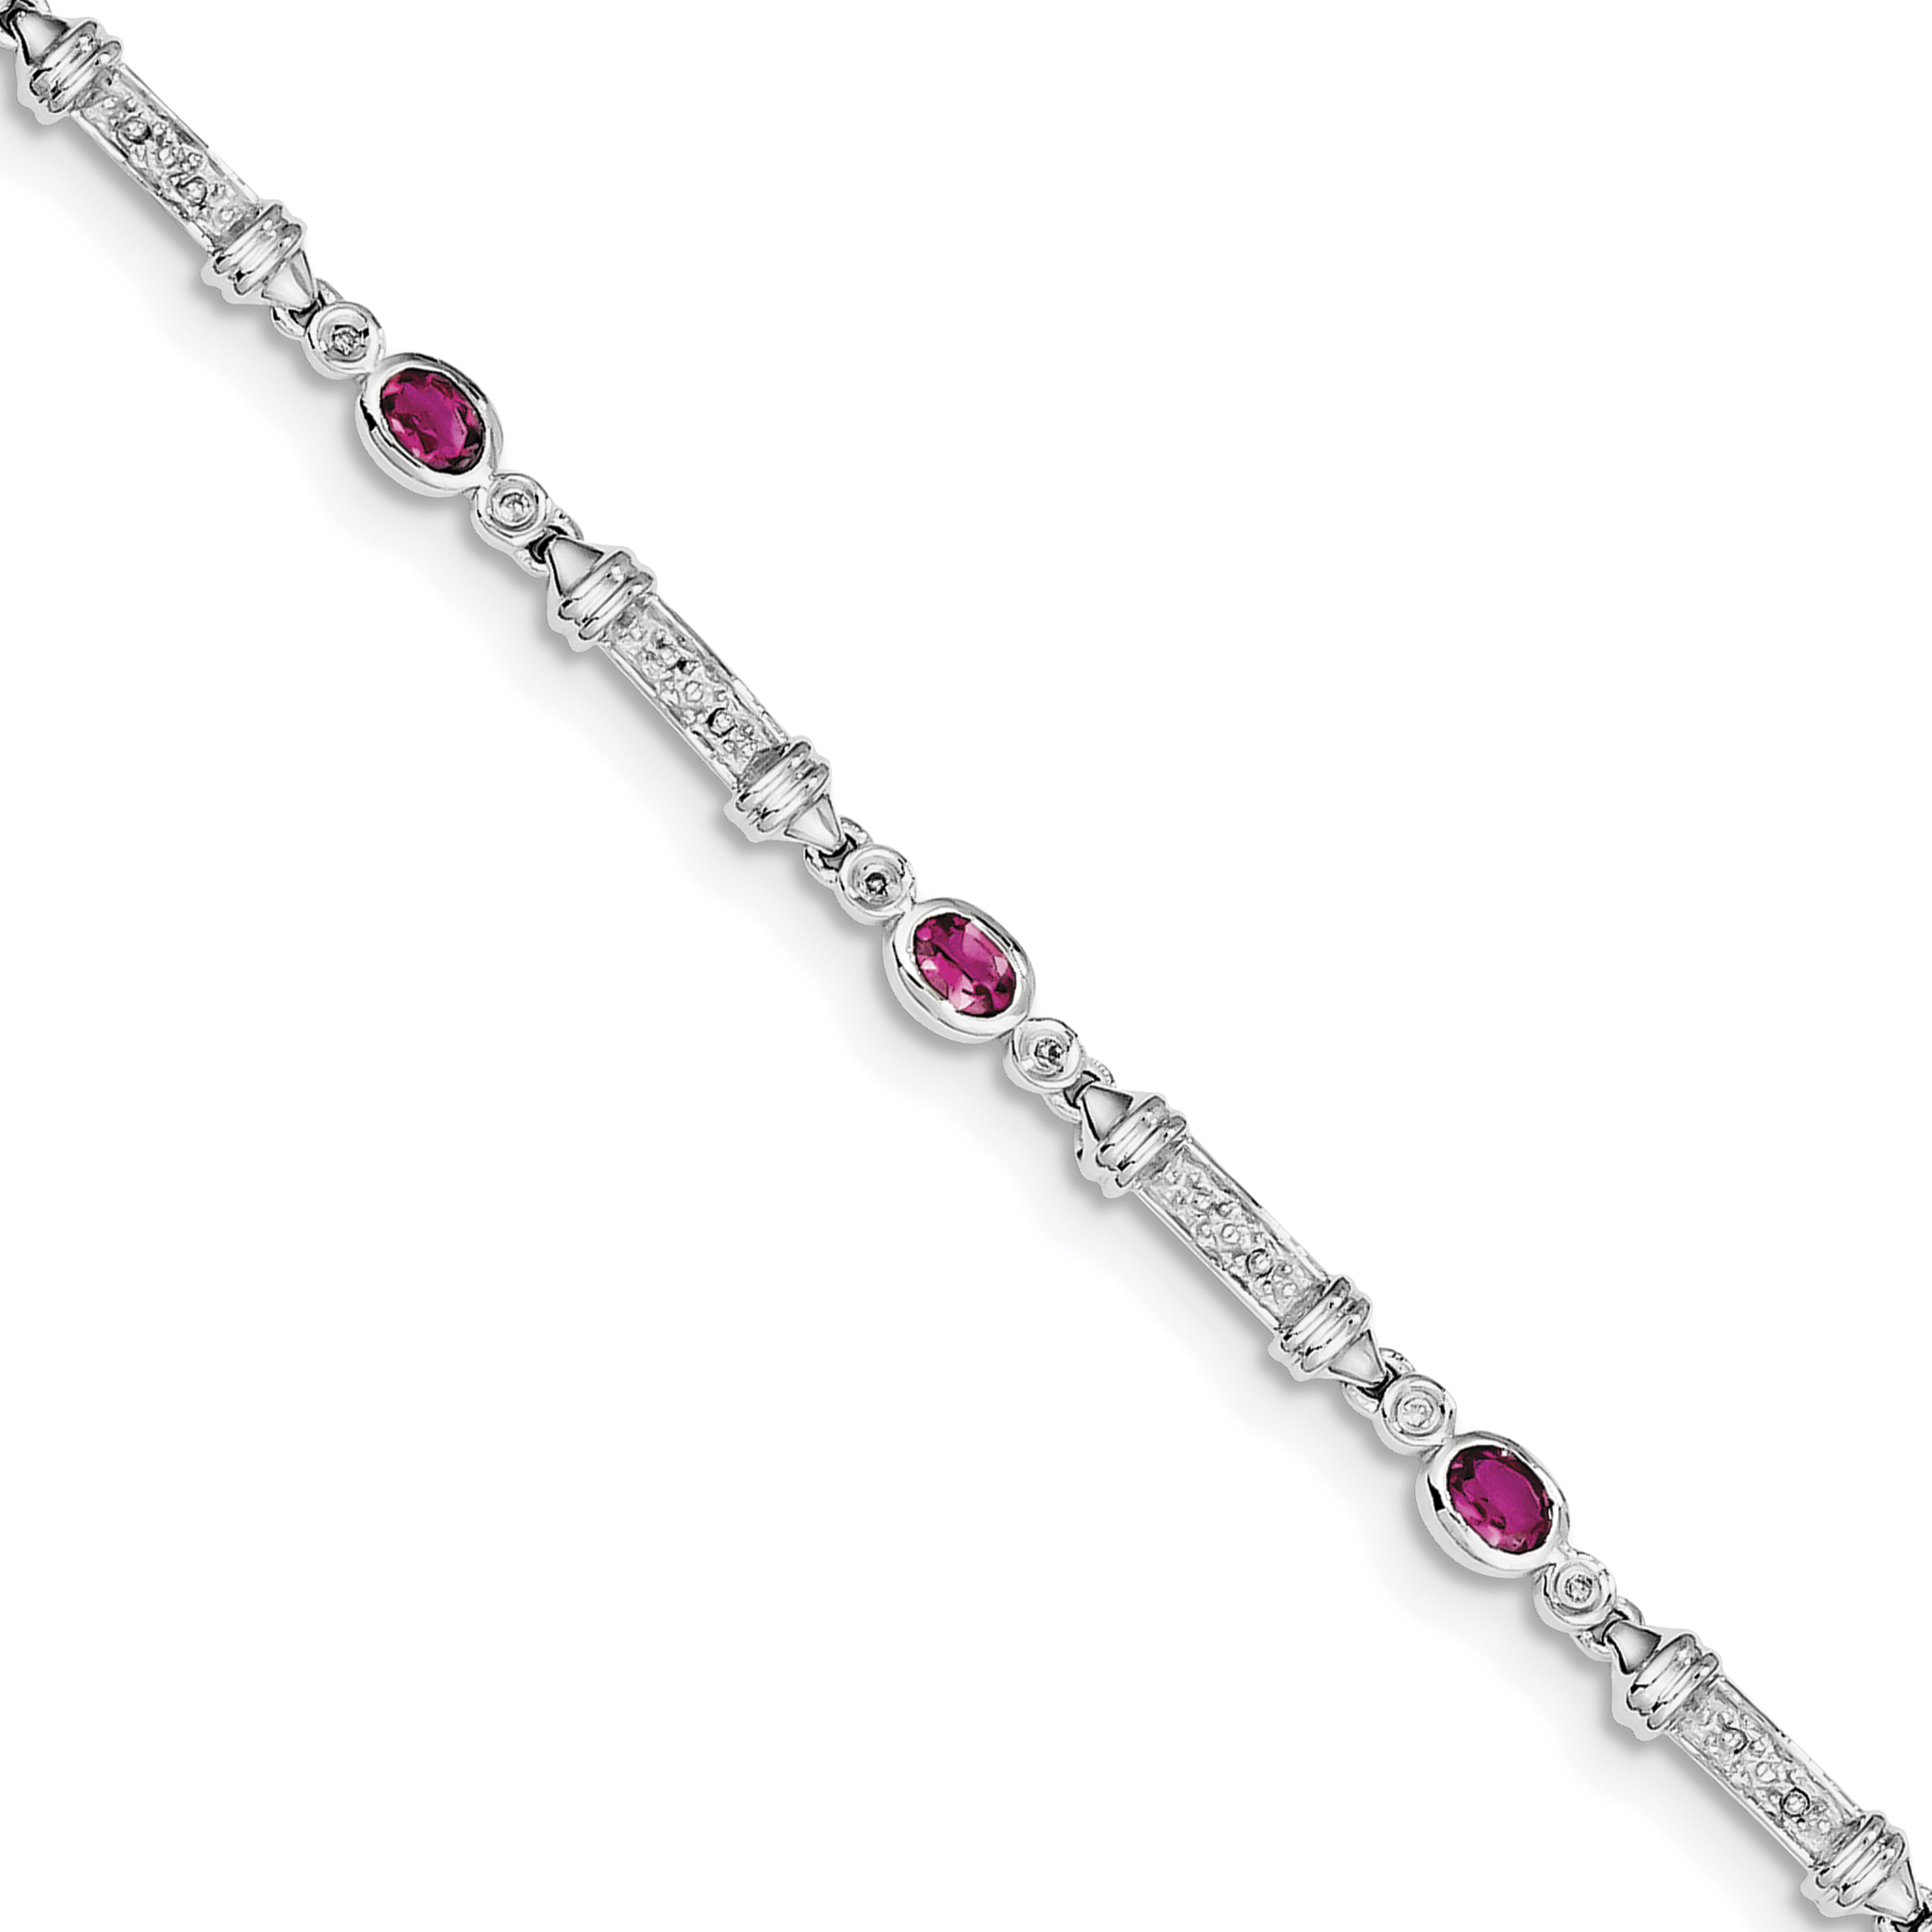 Roy Rose Jewelry Sterling Silver Pink Tourmaline and Diamond Bracelet ~ Length 7'' inches by